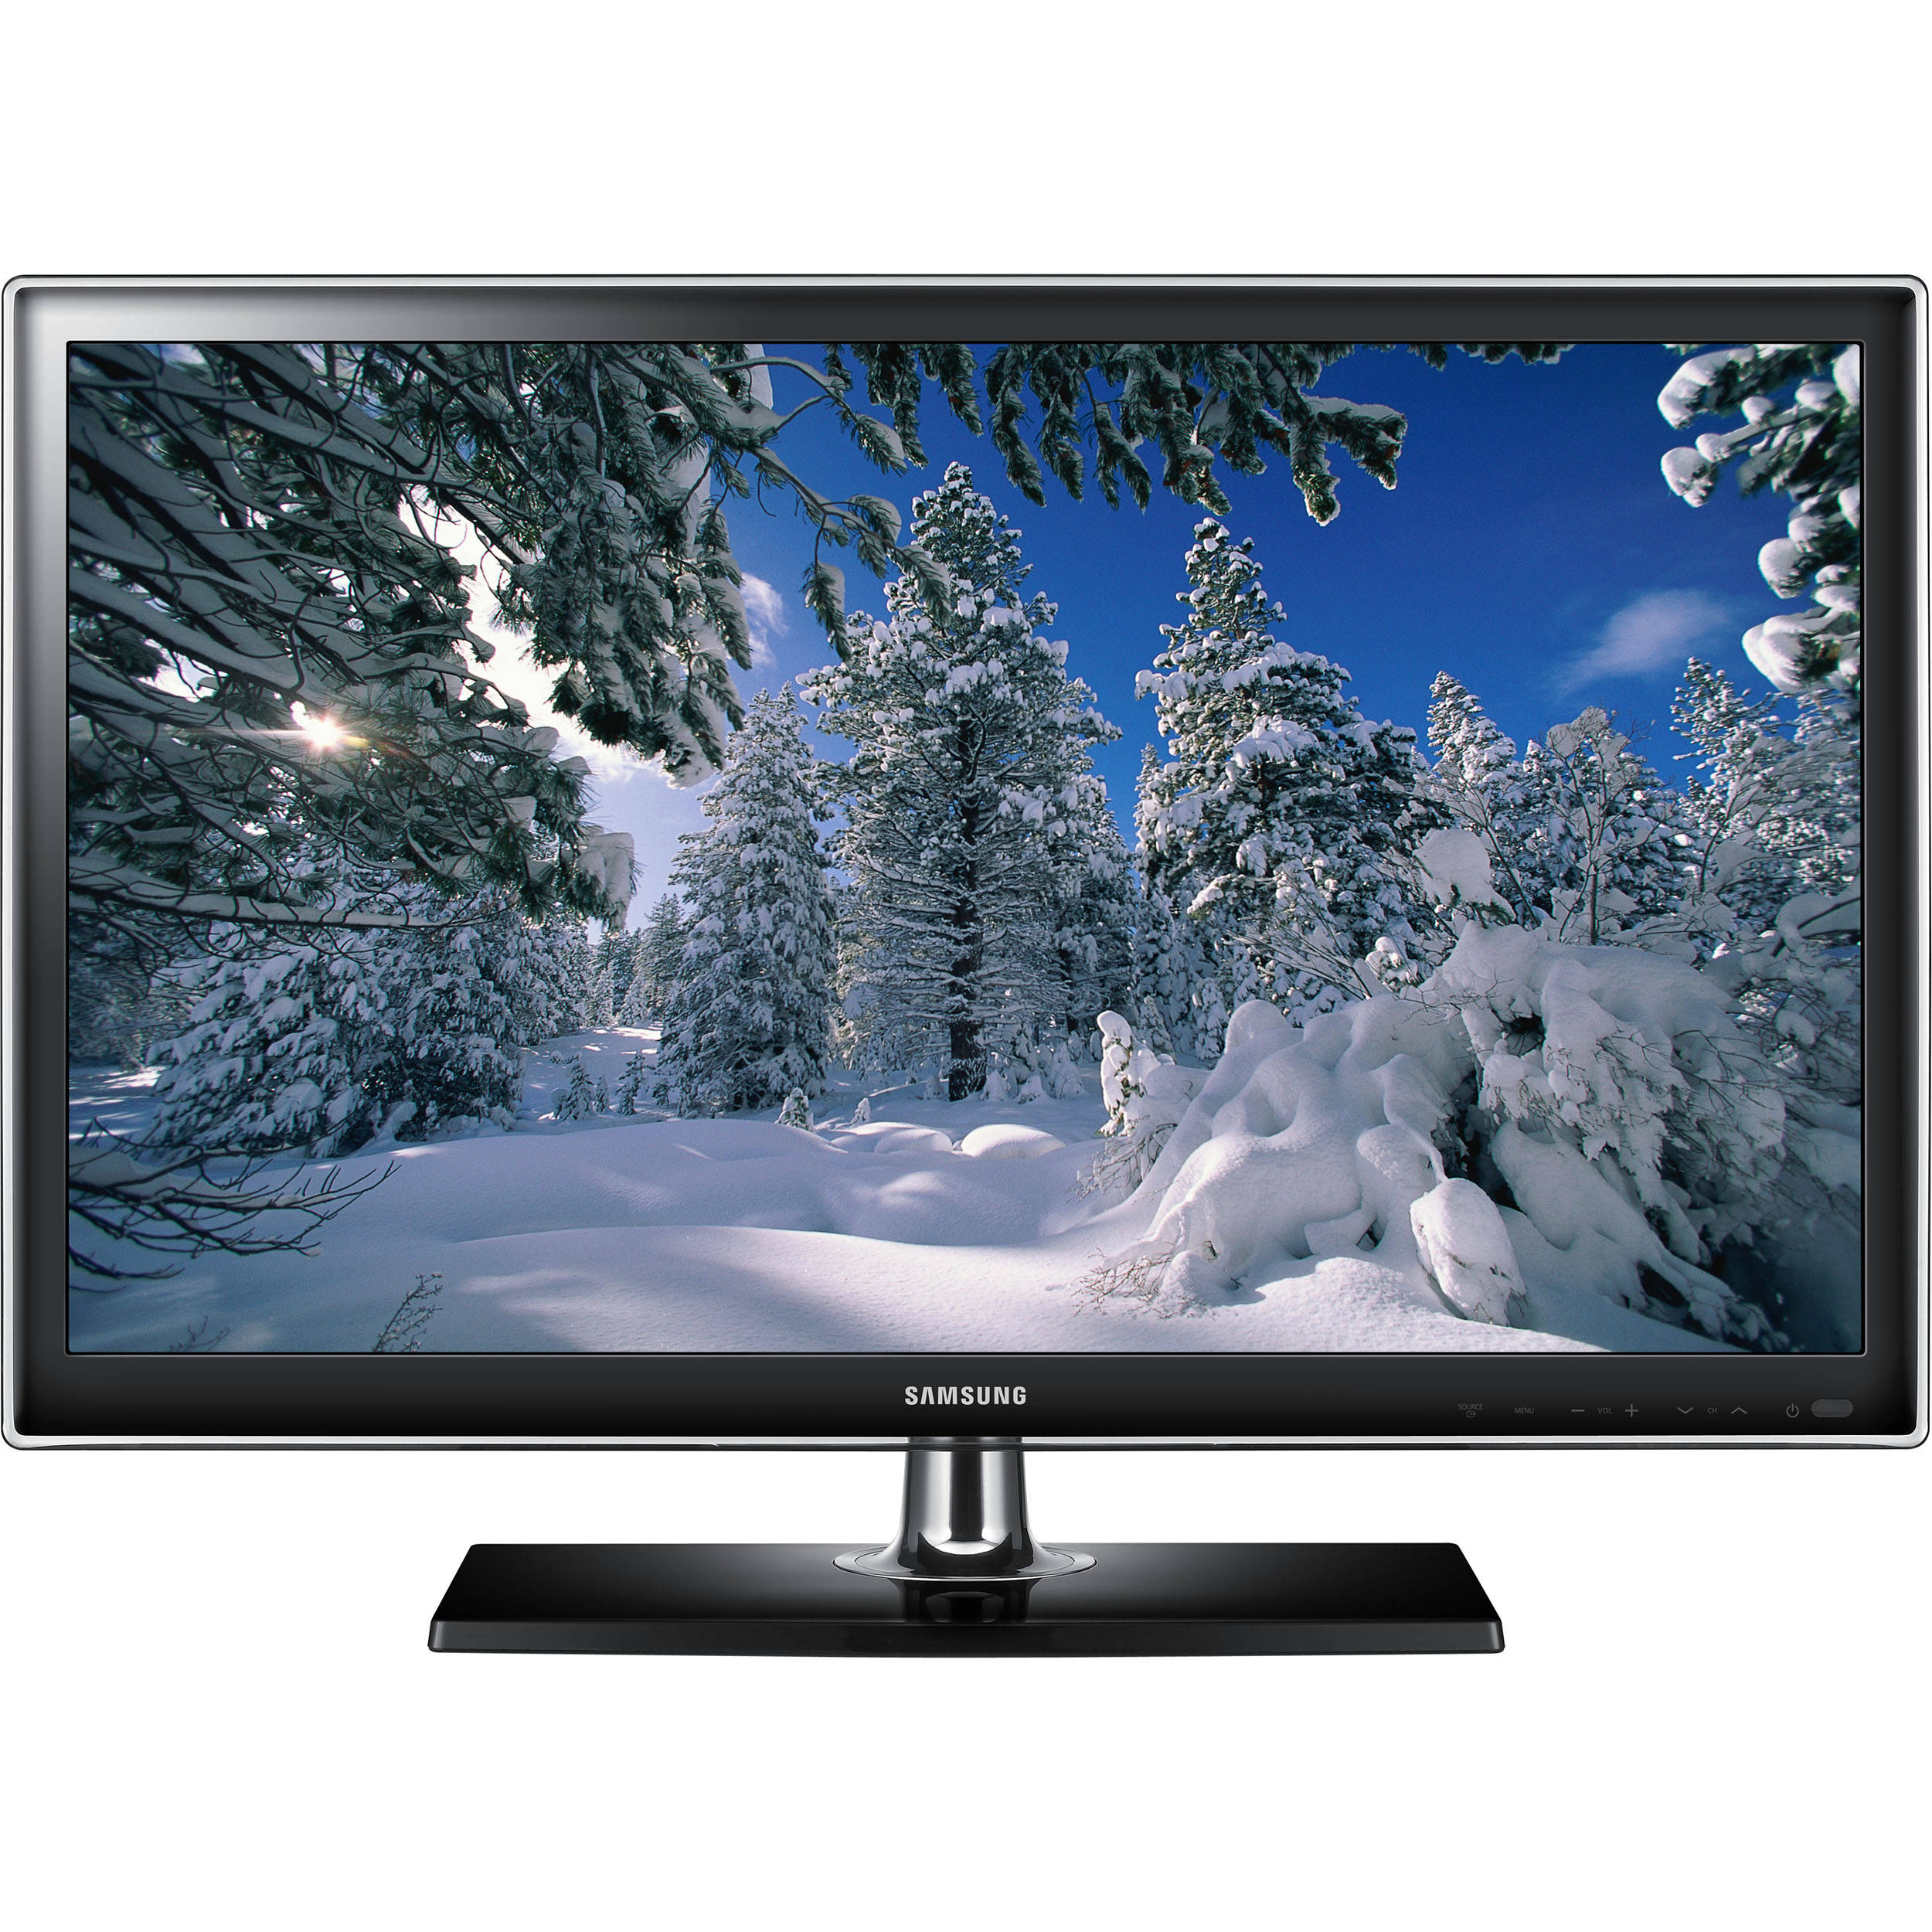 samsung 32 f5000 manual how to and user guide instructions u2022 rh taxibermuda co Seiki 32 LG HDTV